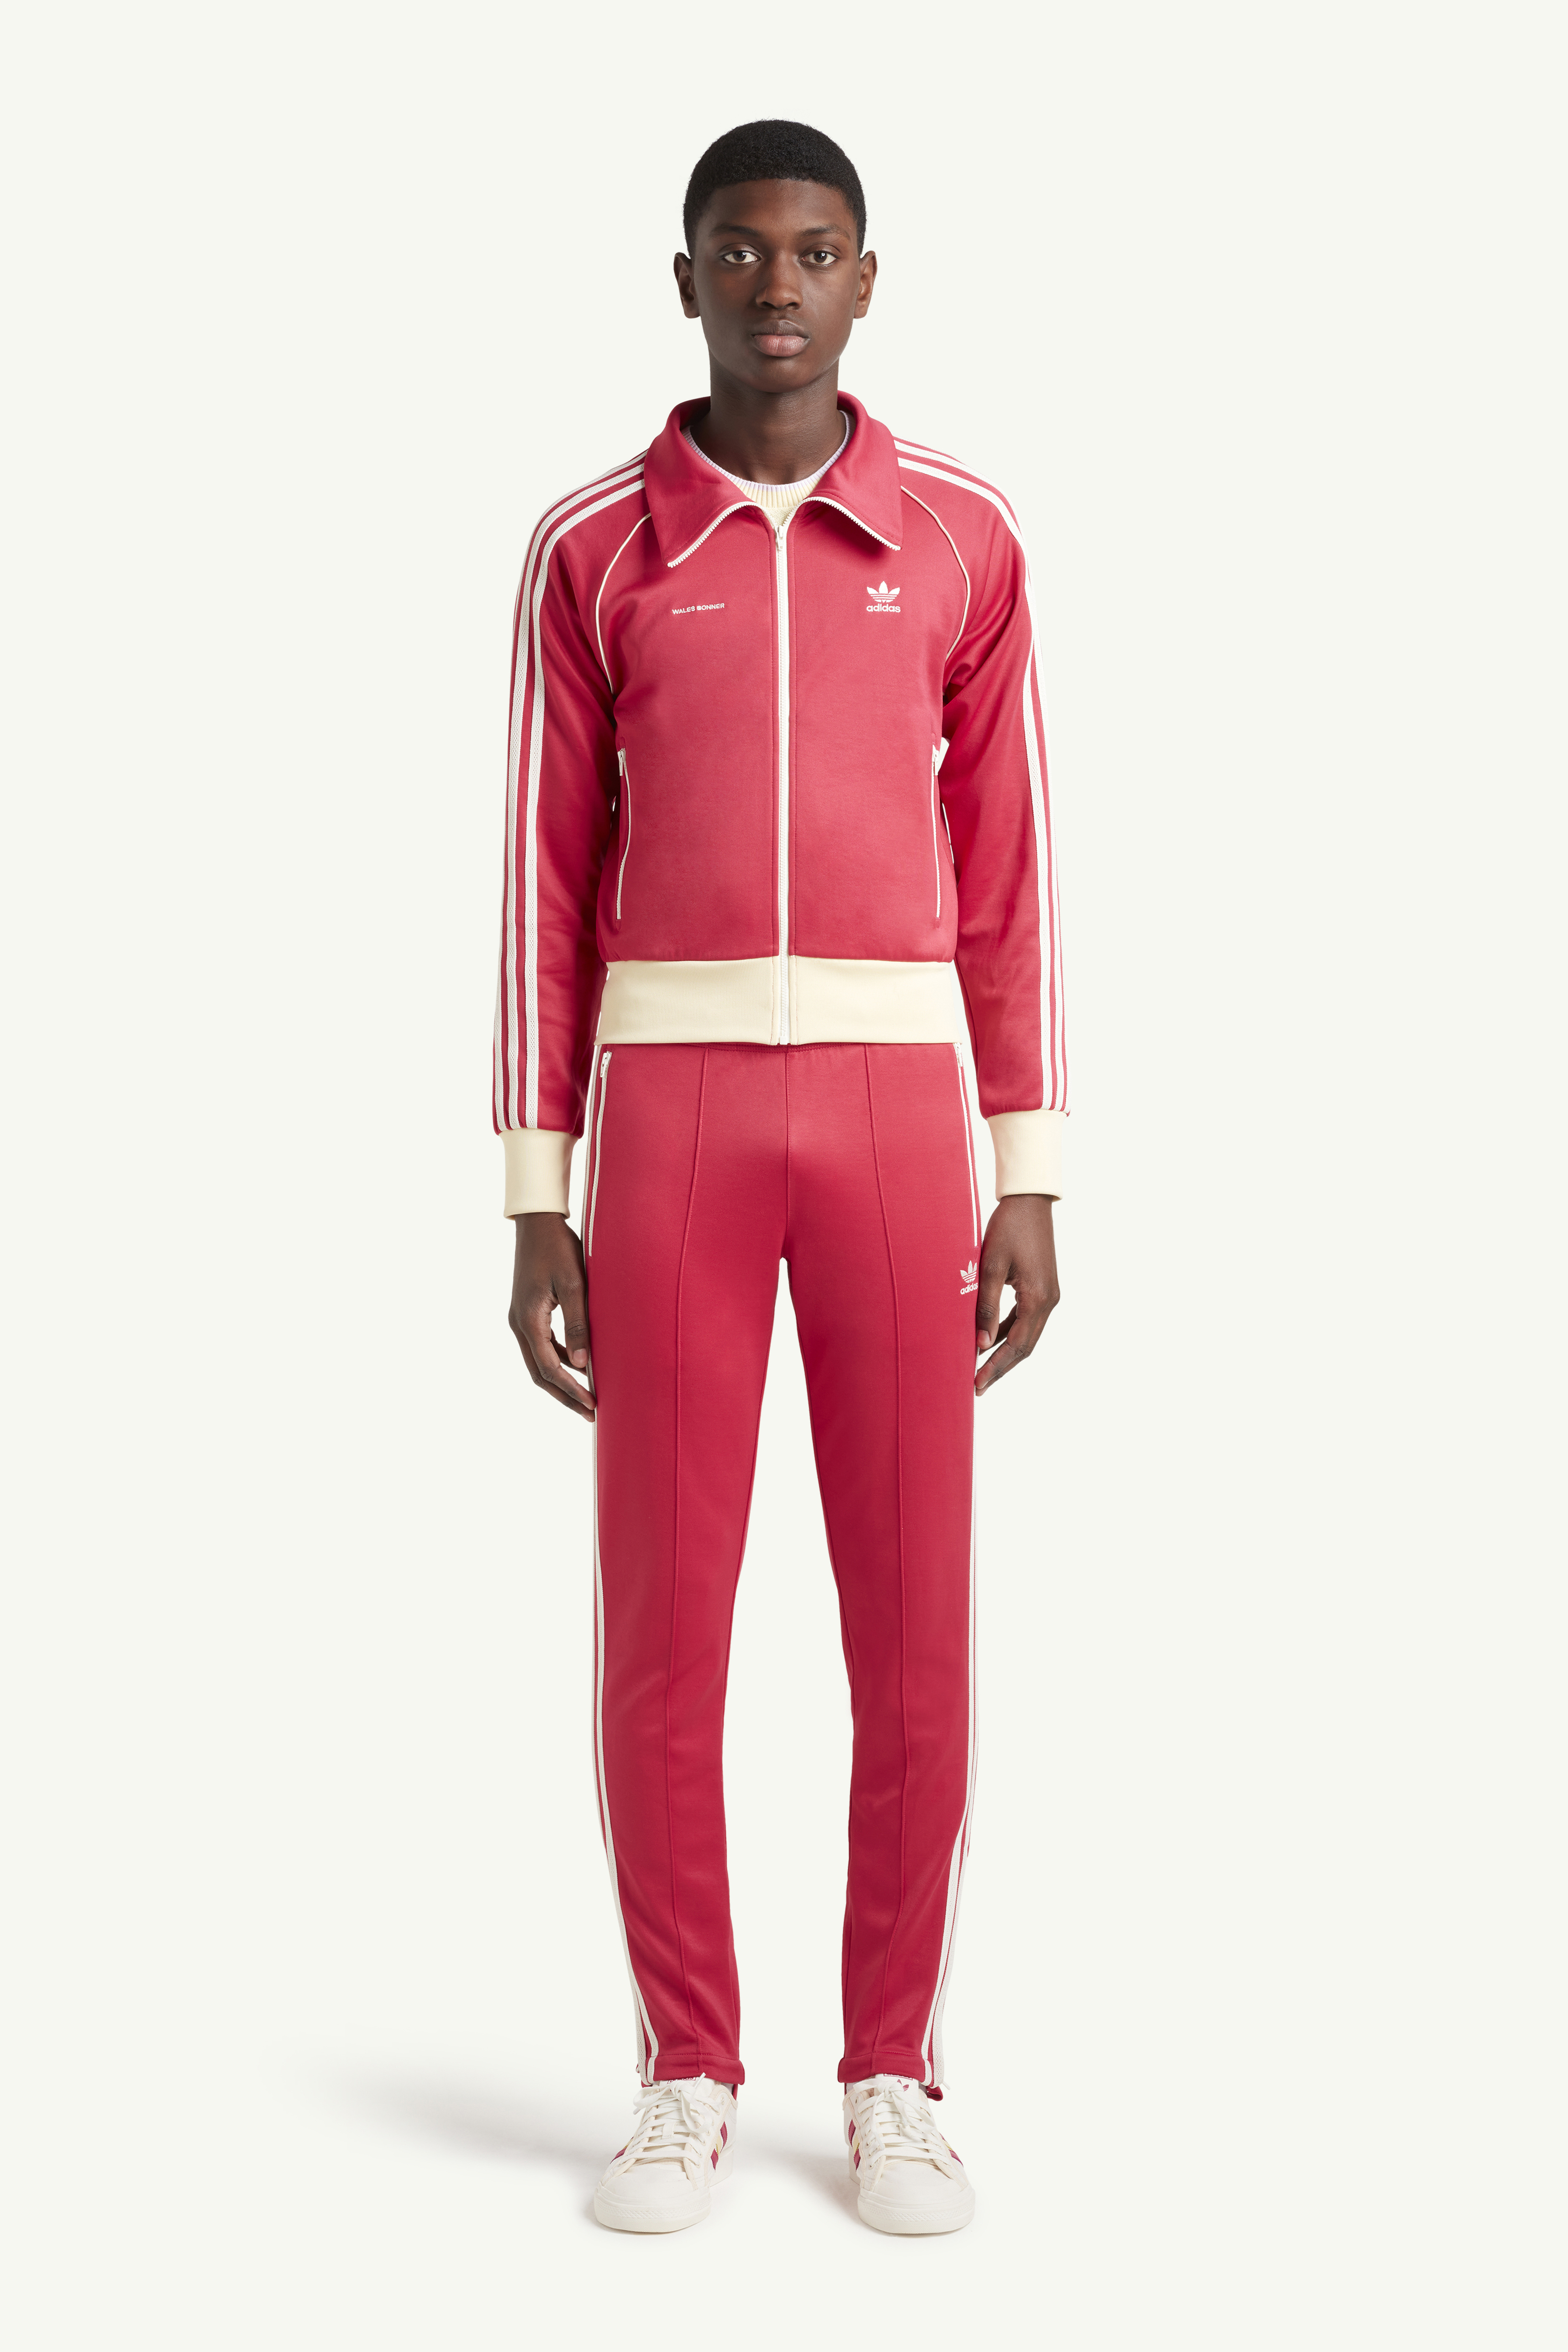 Menswear model wearing Wales Bonner Bright red sweat suit with white trainers | LRP